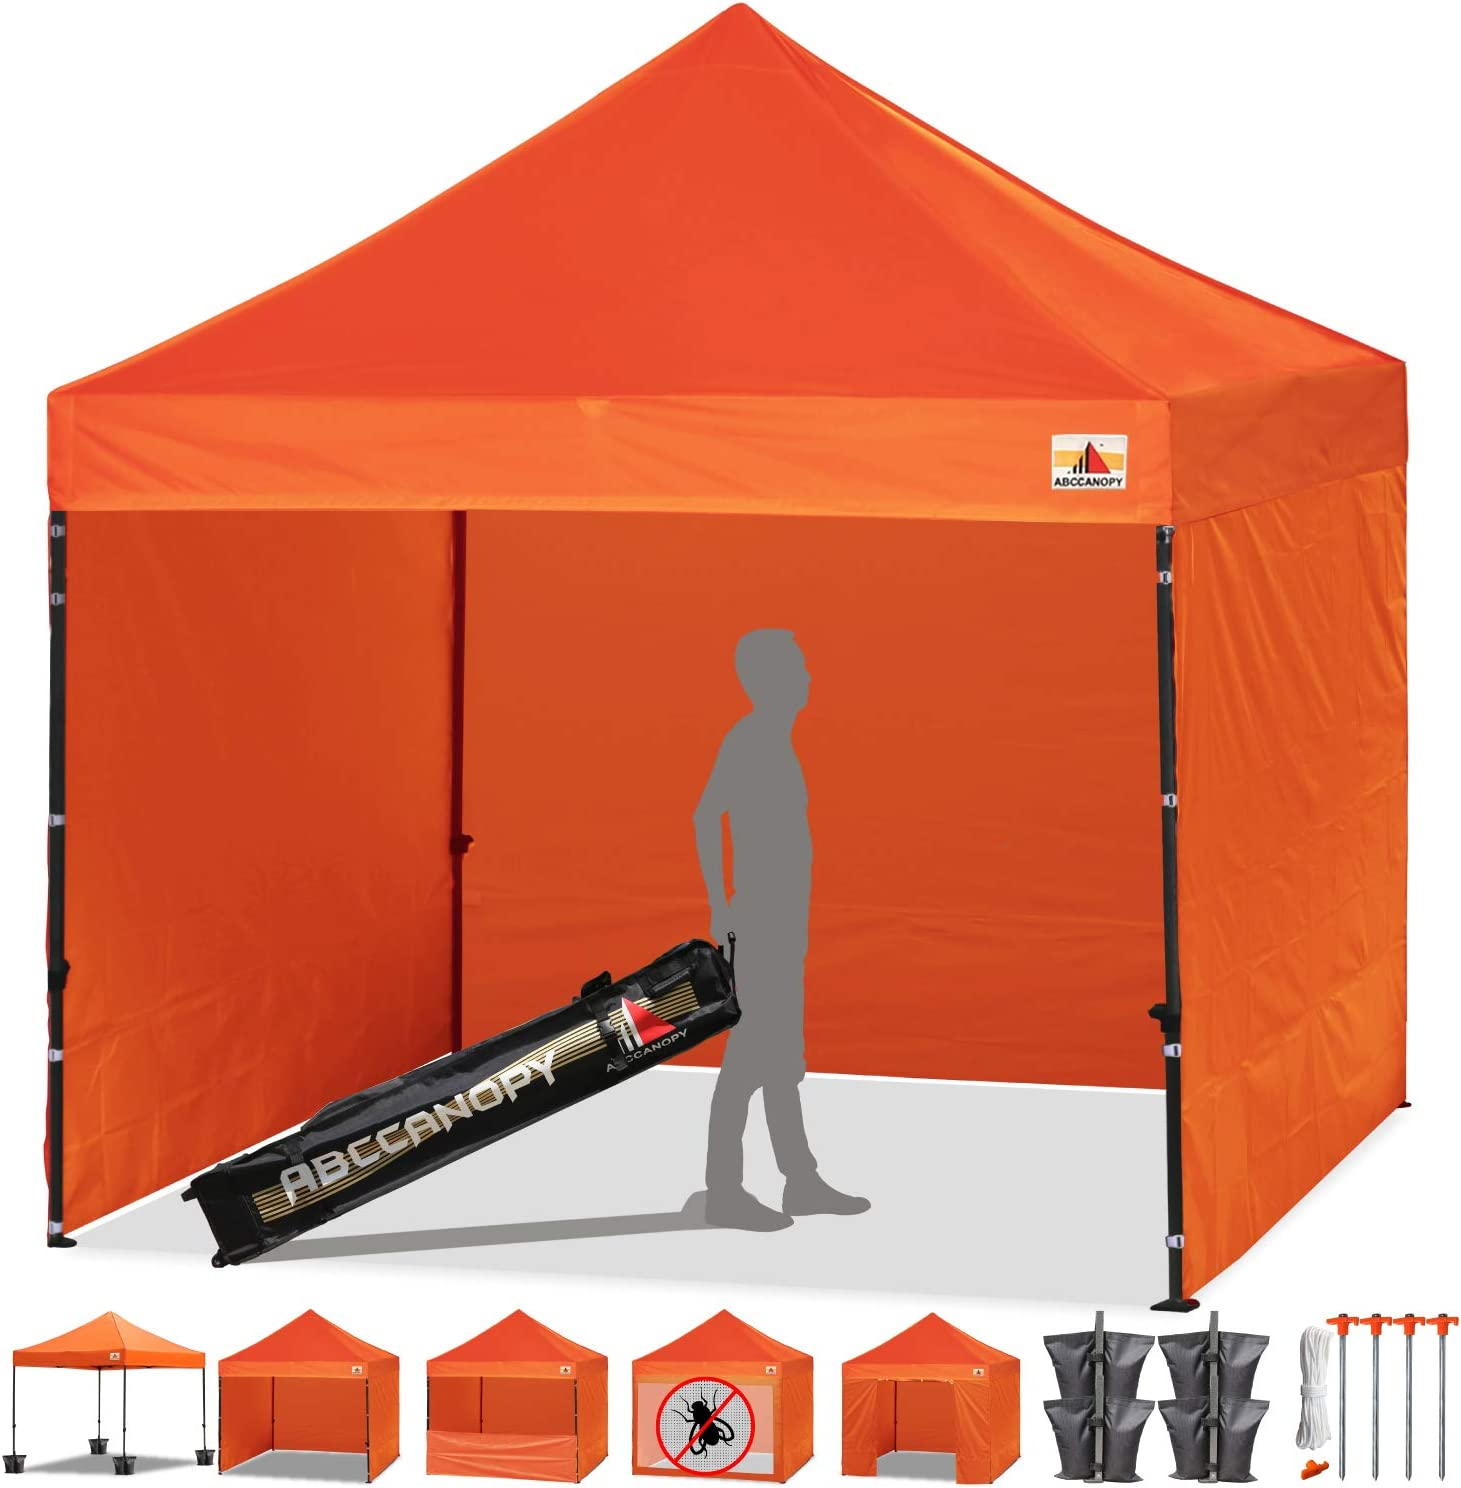 ABCCANOPY Canopy Tent Popup Canopy 10x10 Pop Up Canopies Commercial Tents Market stall with 6 Removable Sidewalls and Roller Bag Bonus 4 Weight Bags and 10ft Screen Netting and Half Wall, Aurantia 716OlEyVGfL